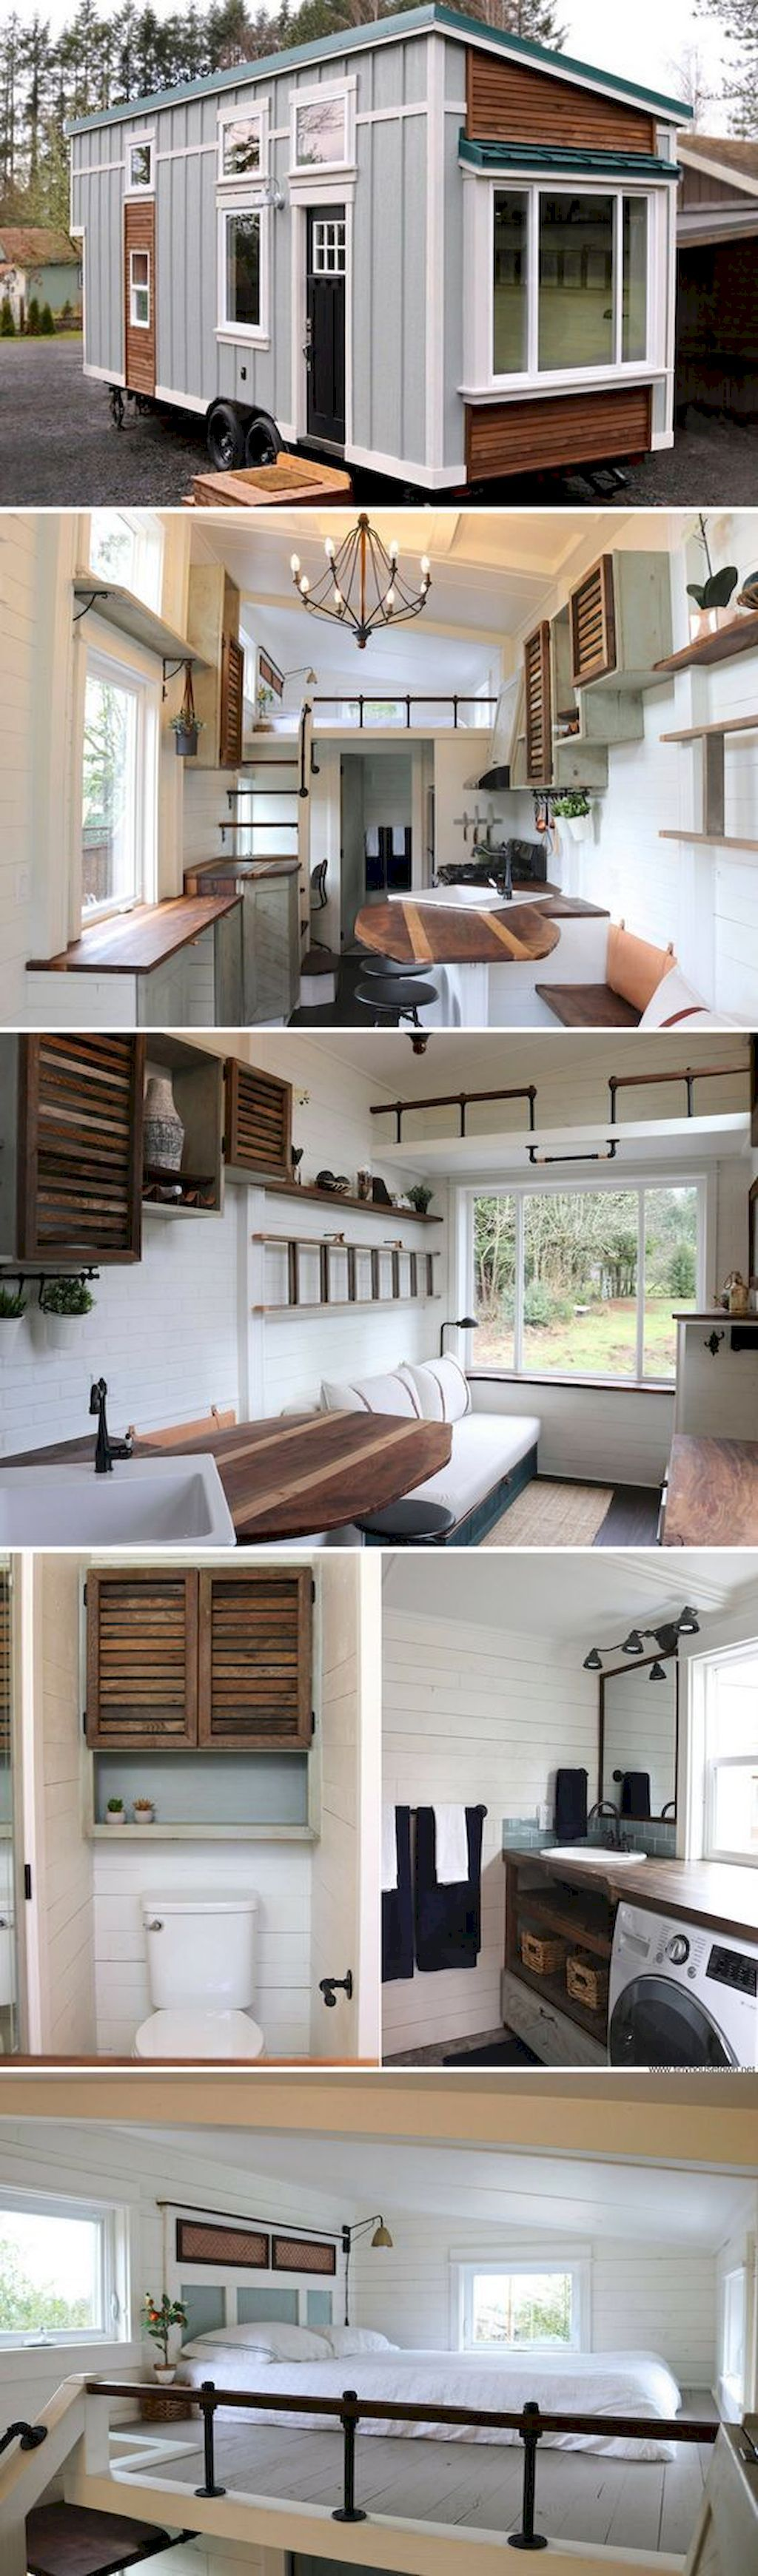 Cool 60 Smart Tiny House Ideas and